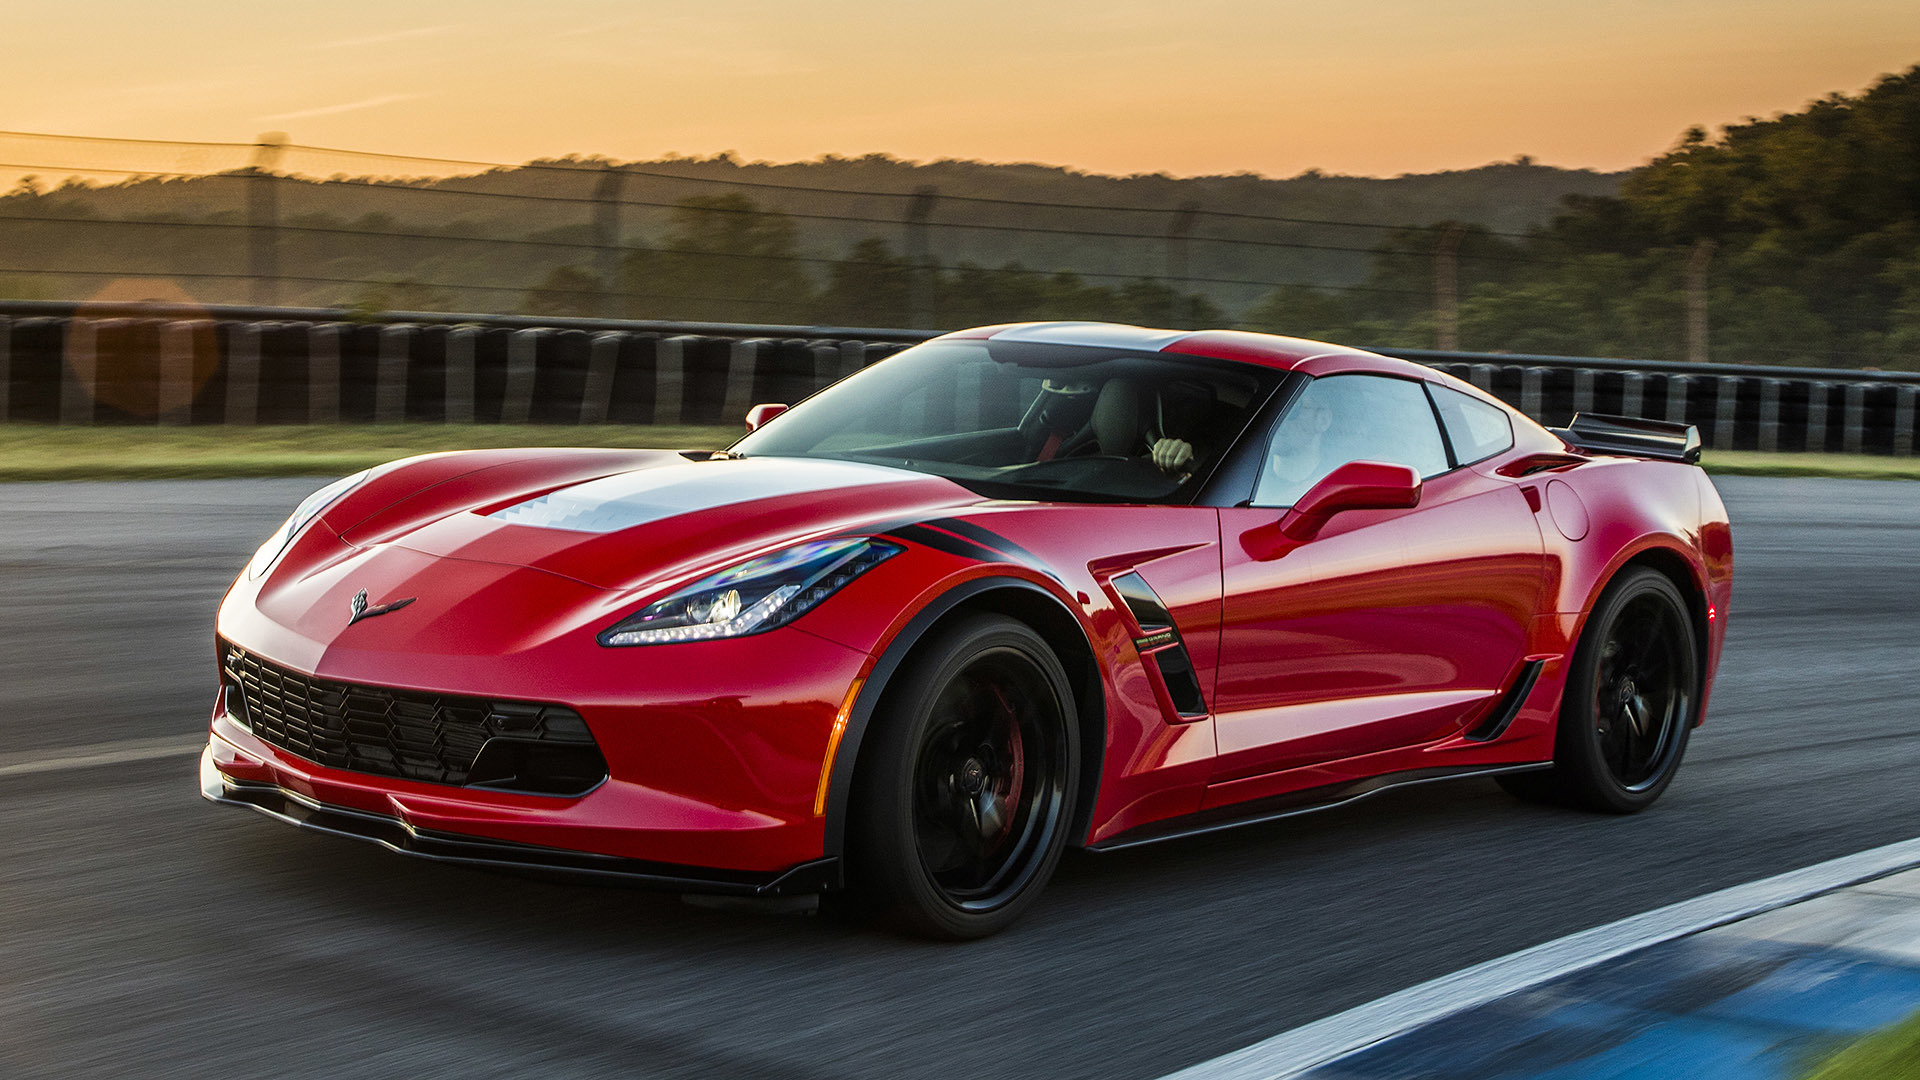 2017 Chevrolet Corvette Grand Sport First Drive | Autoblog